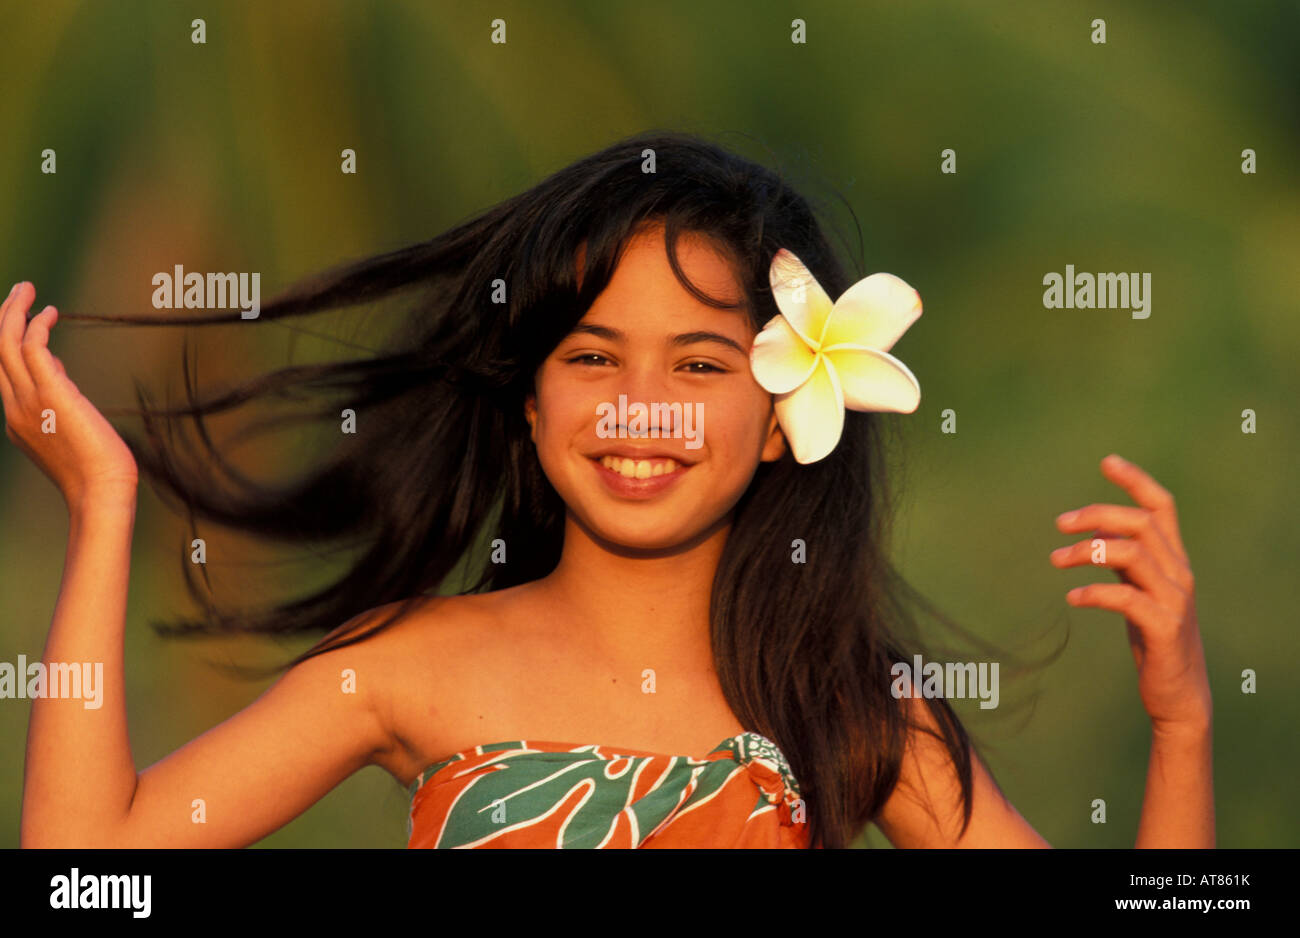 Young local hawaiian girl smiling with flower in her hair stock young local hawaiian girl smiling with flower in her hair izmirmasajfo Gallery